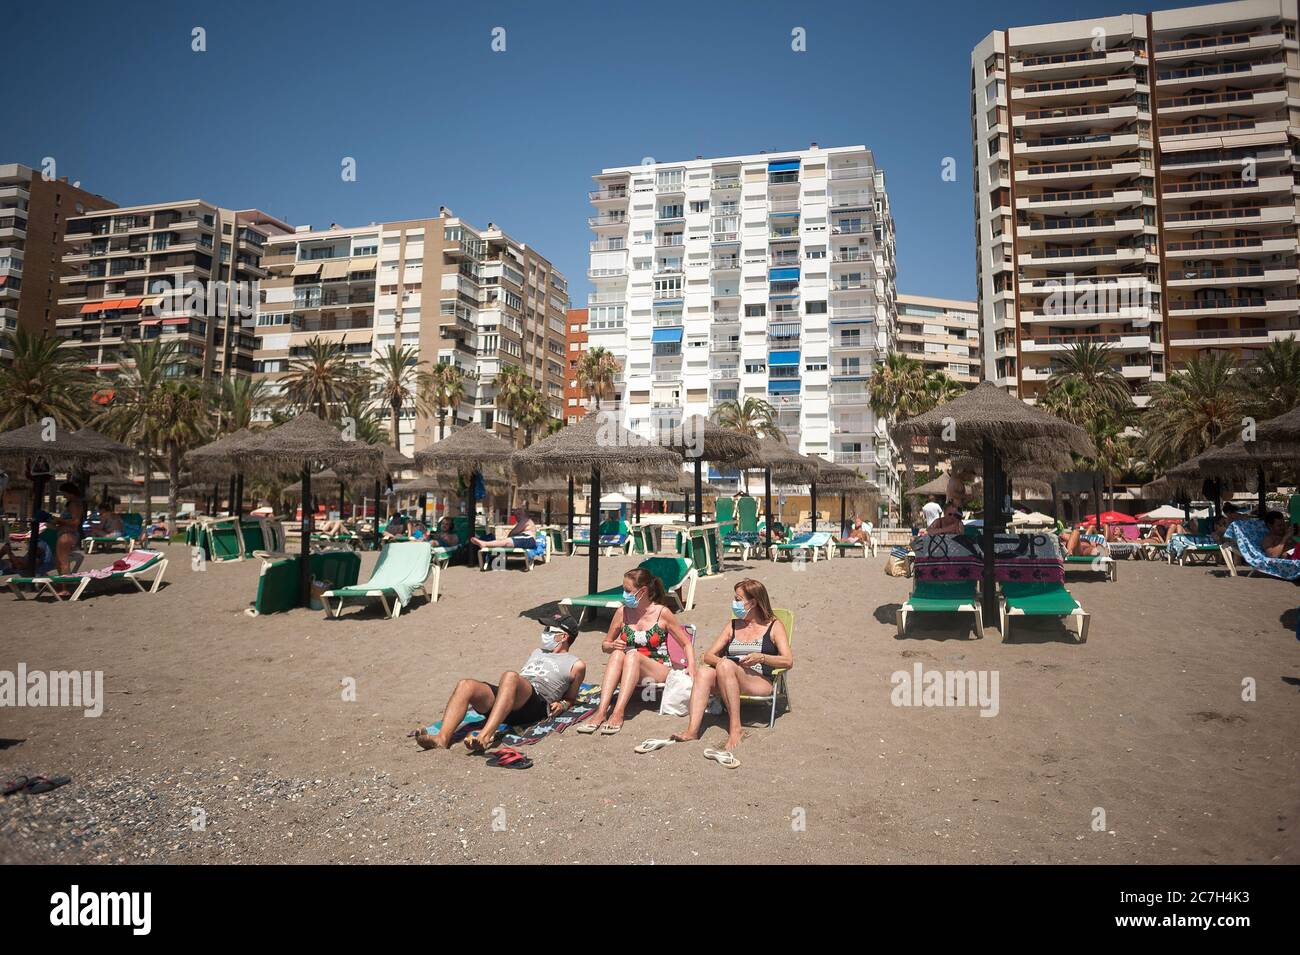 Malaga, Spain. 17th July, 2020. A family wearing face masks seen sunbathing at La Malagueta beach amid coronavirus crisis.The appearance of new coronavirus (COVID-19) outbreak in Spain after easing of restrictions has caused the regional government to impose the obligatory use of face masks in outdoors places even when they observe a safe distance between people. This measure tries to curb the spread of coronavirus pandemic. Credit: SOPA Images Limited/Alamy Live News Stock Photo